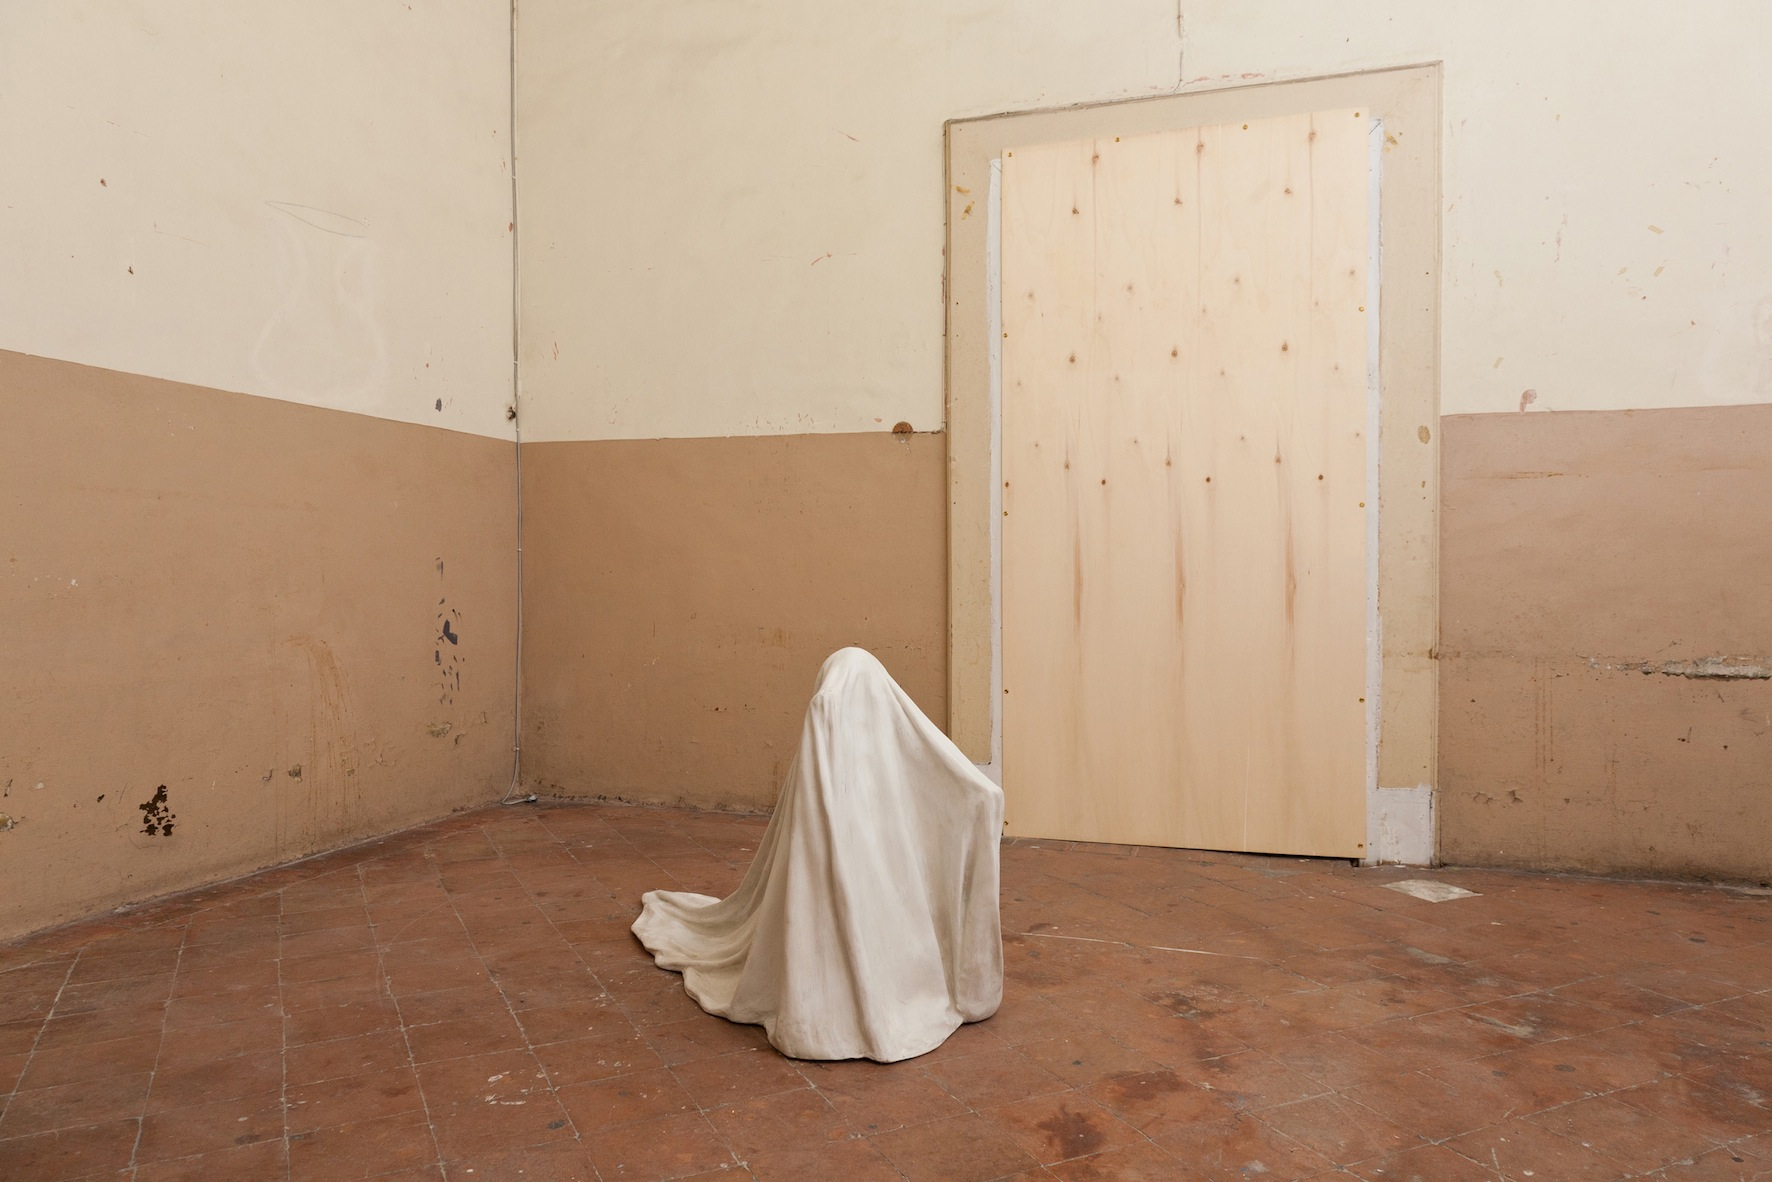 Ryan Gander - Tell my mother not to worry (I) - 2012 - courtesy the artist & gb agency, Paris